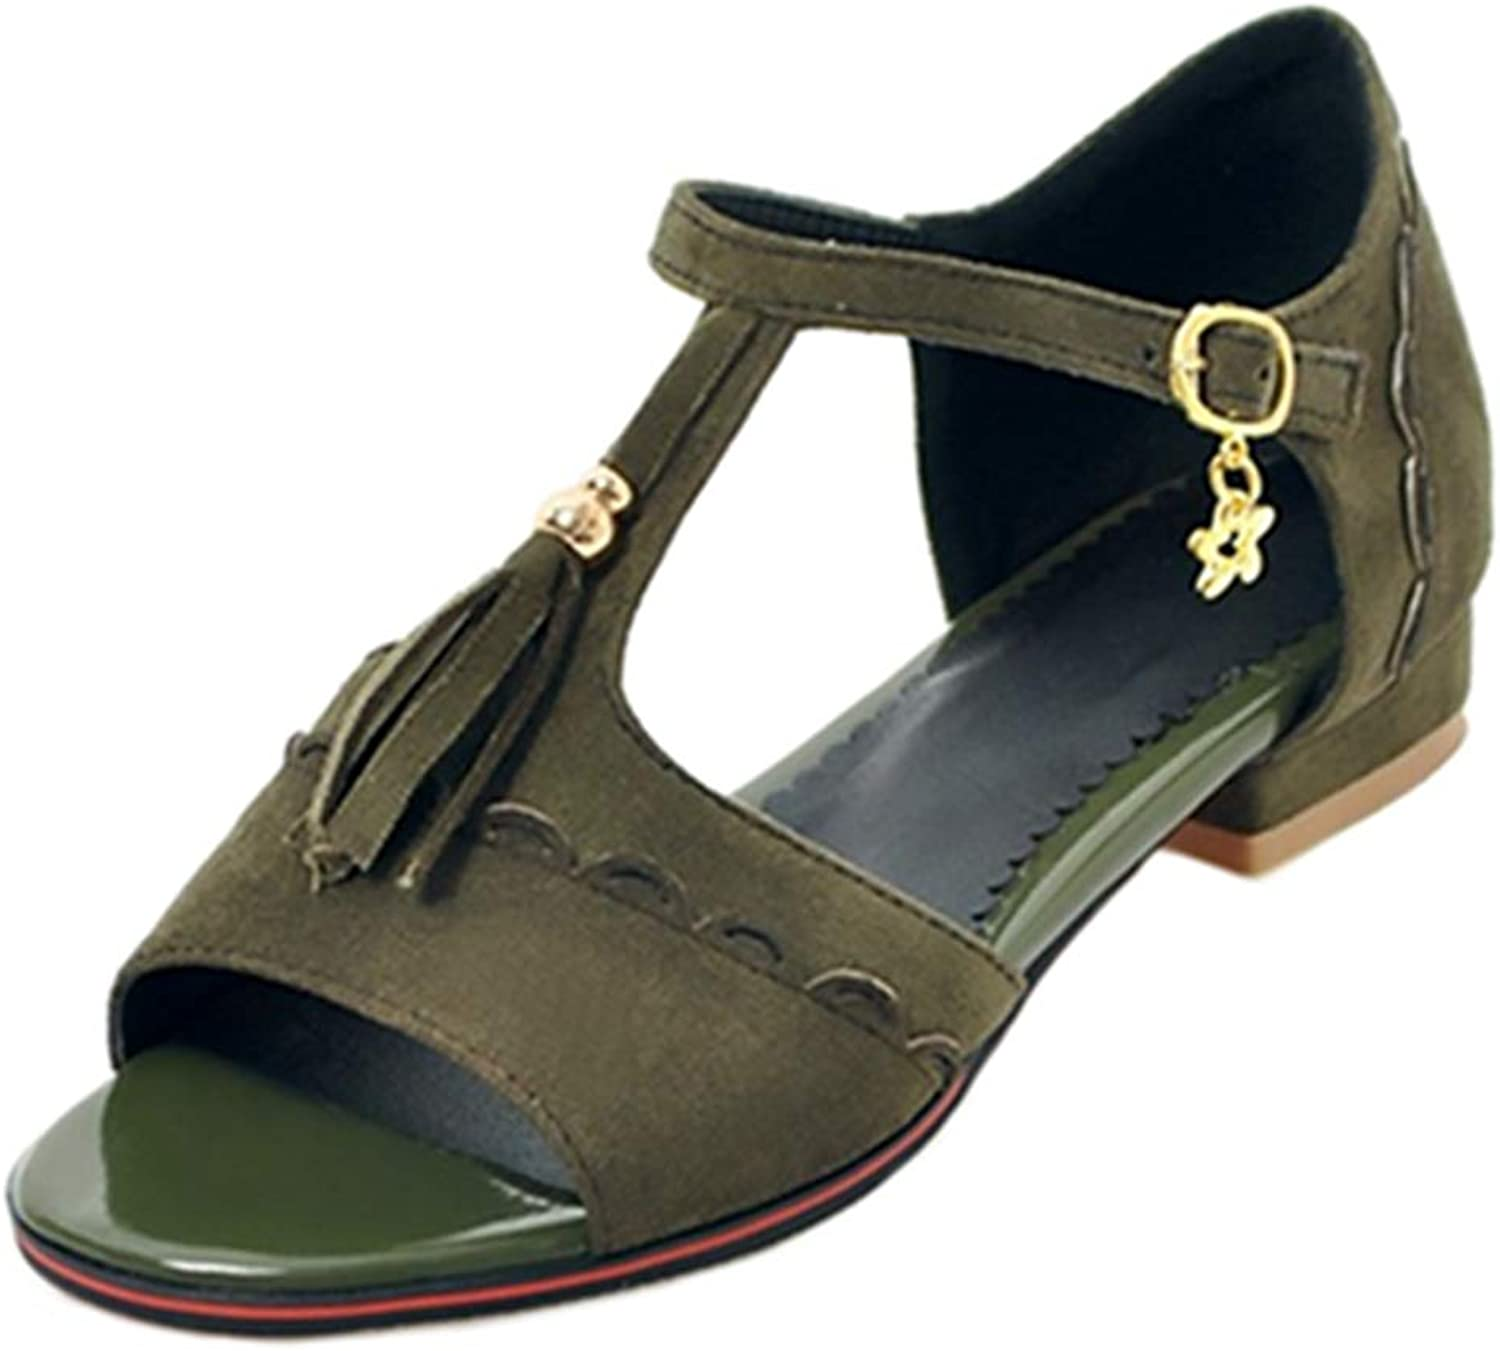 Lashoes Casual Sandals with Low Heel for Fashion Women